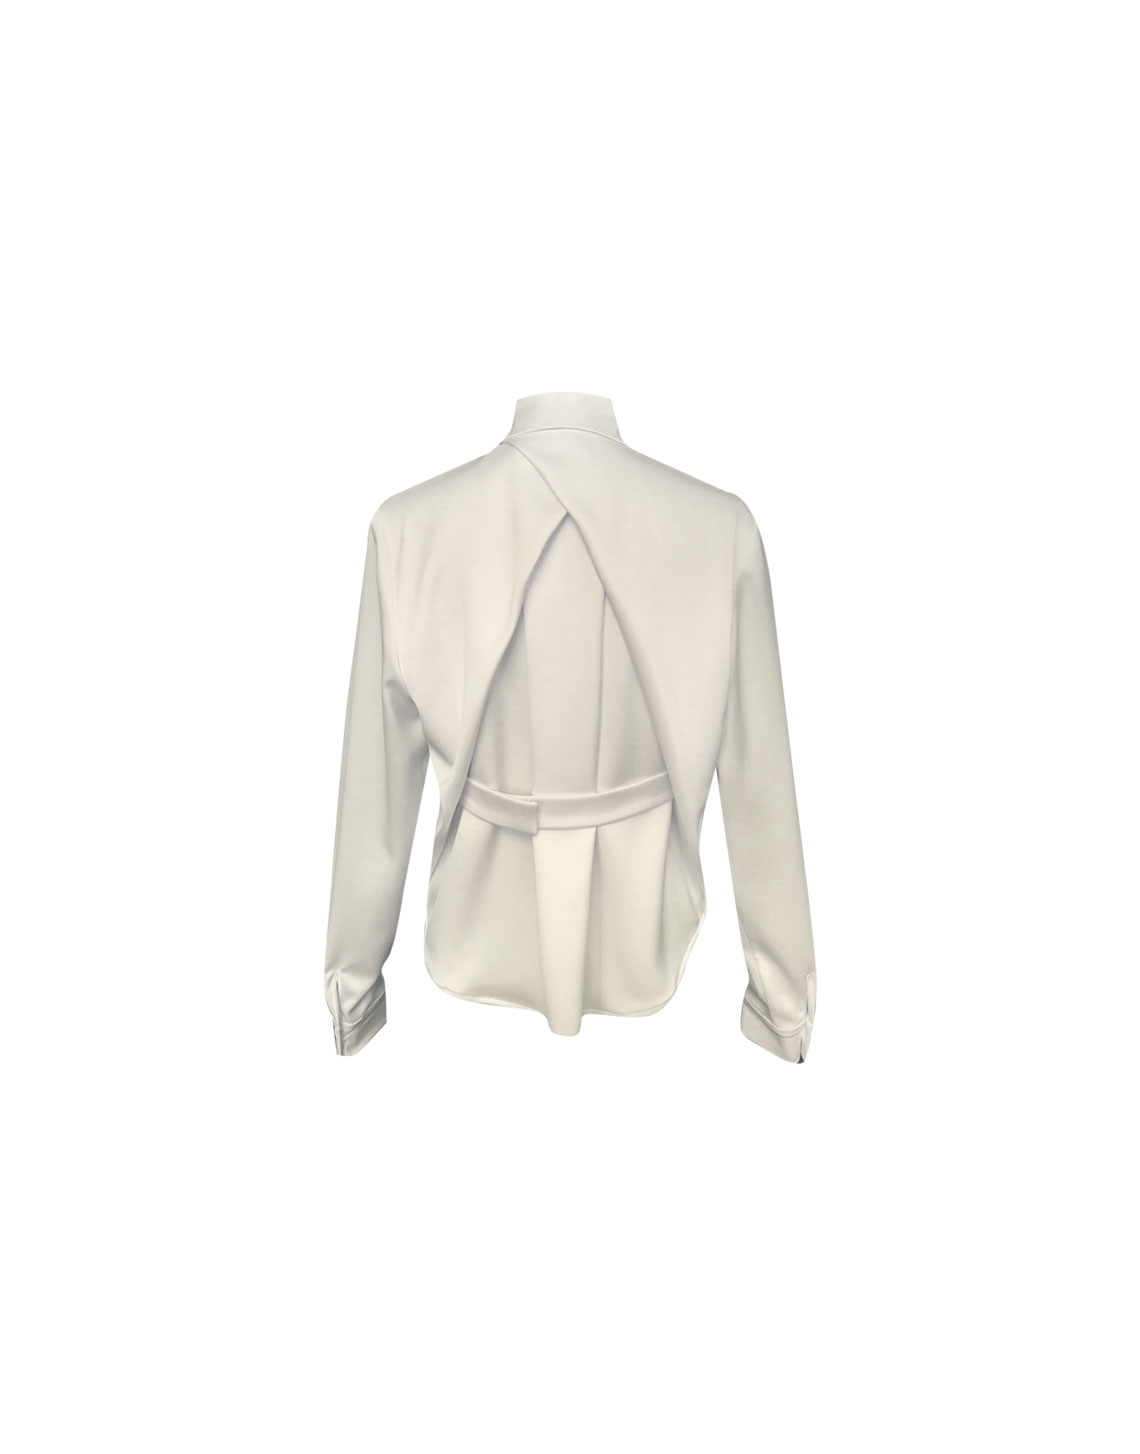 Dume Shirt - White by Jessica K on curated-crowd.com